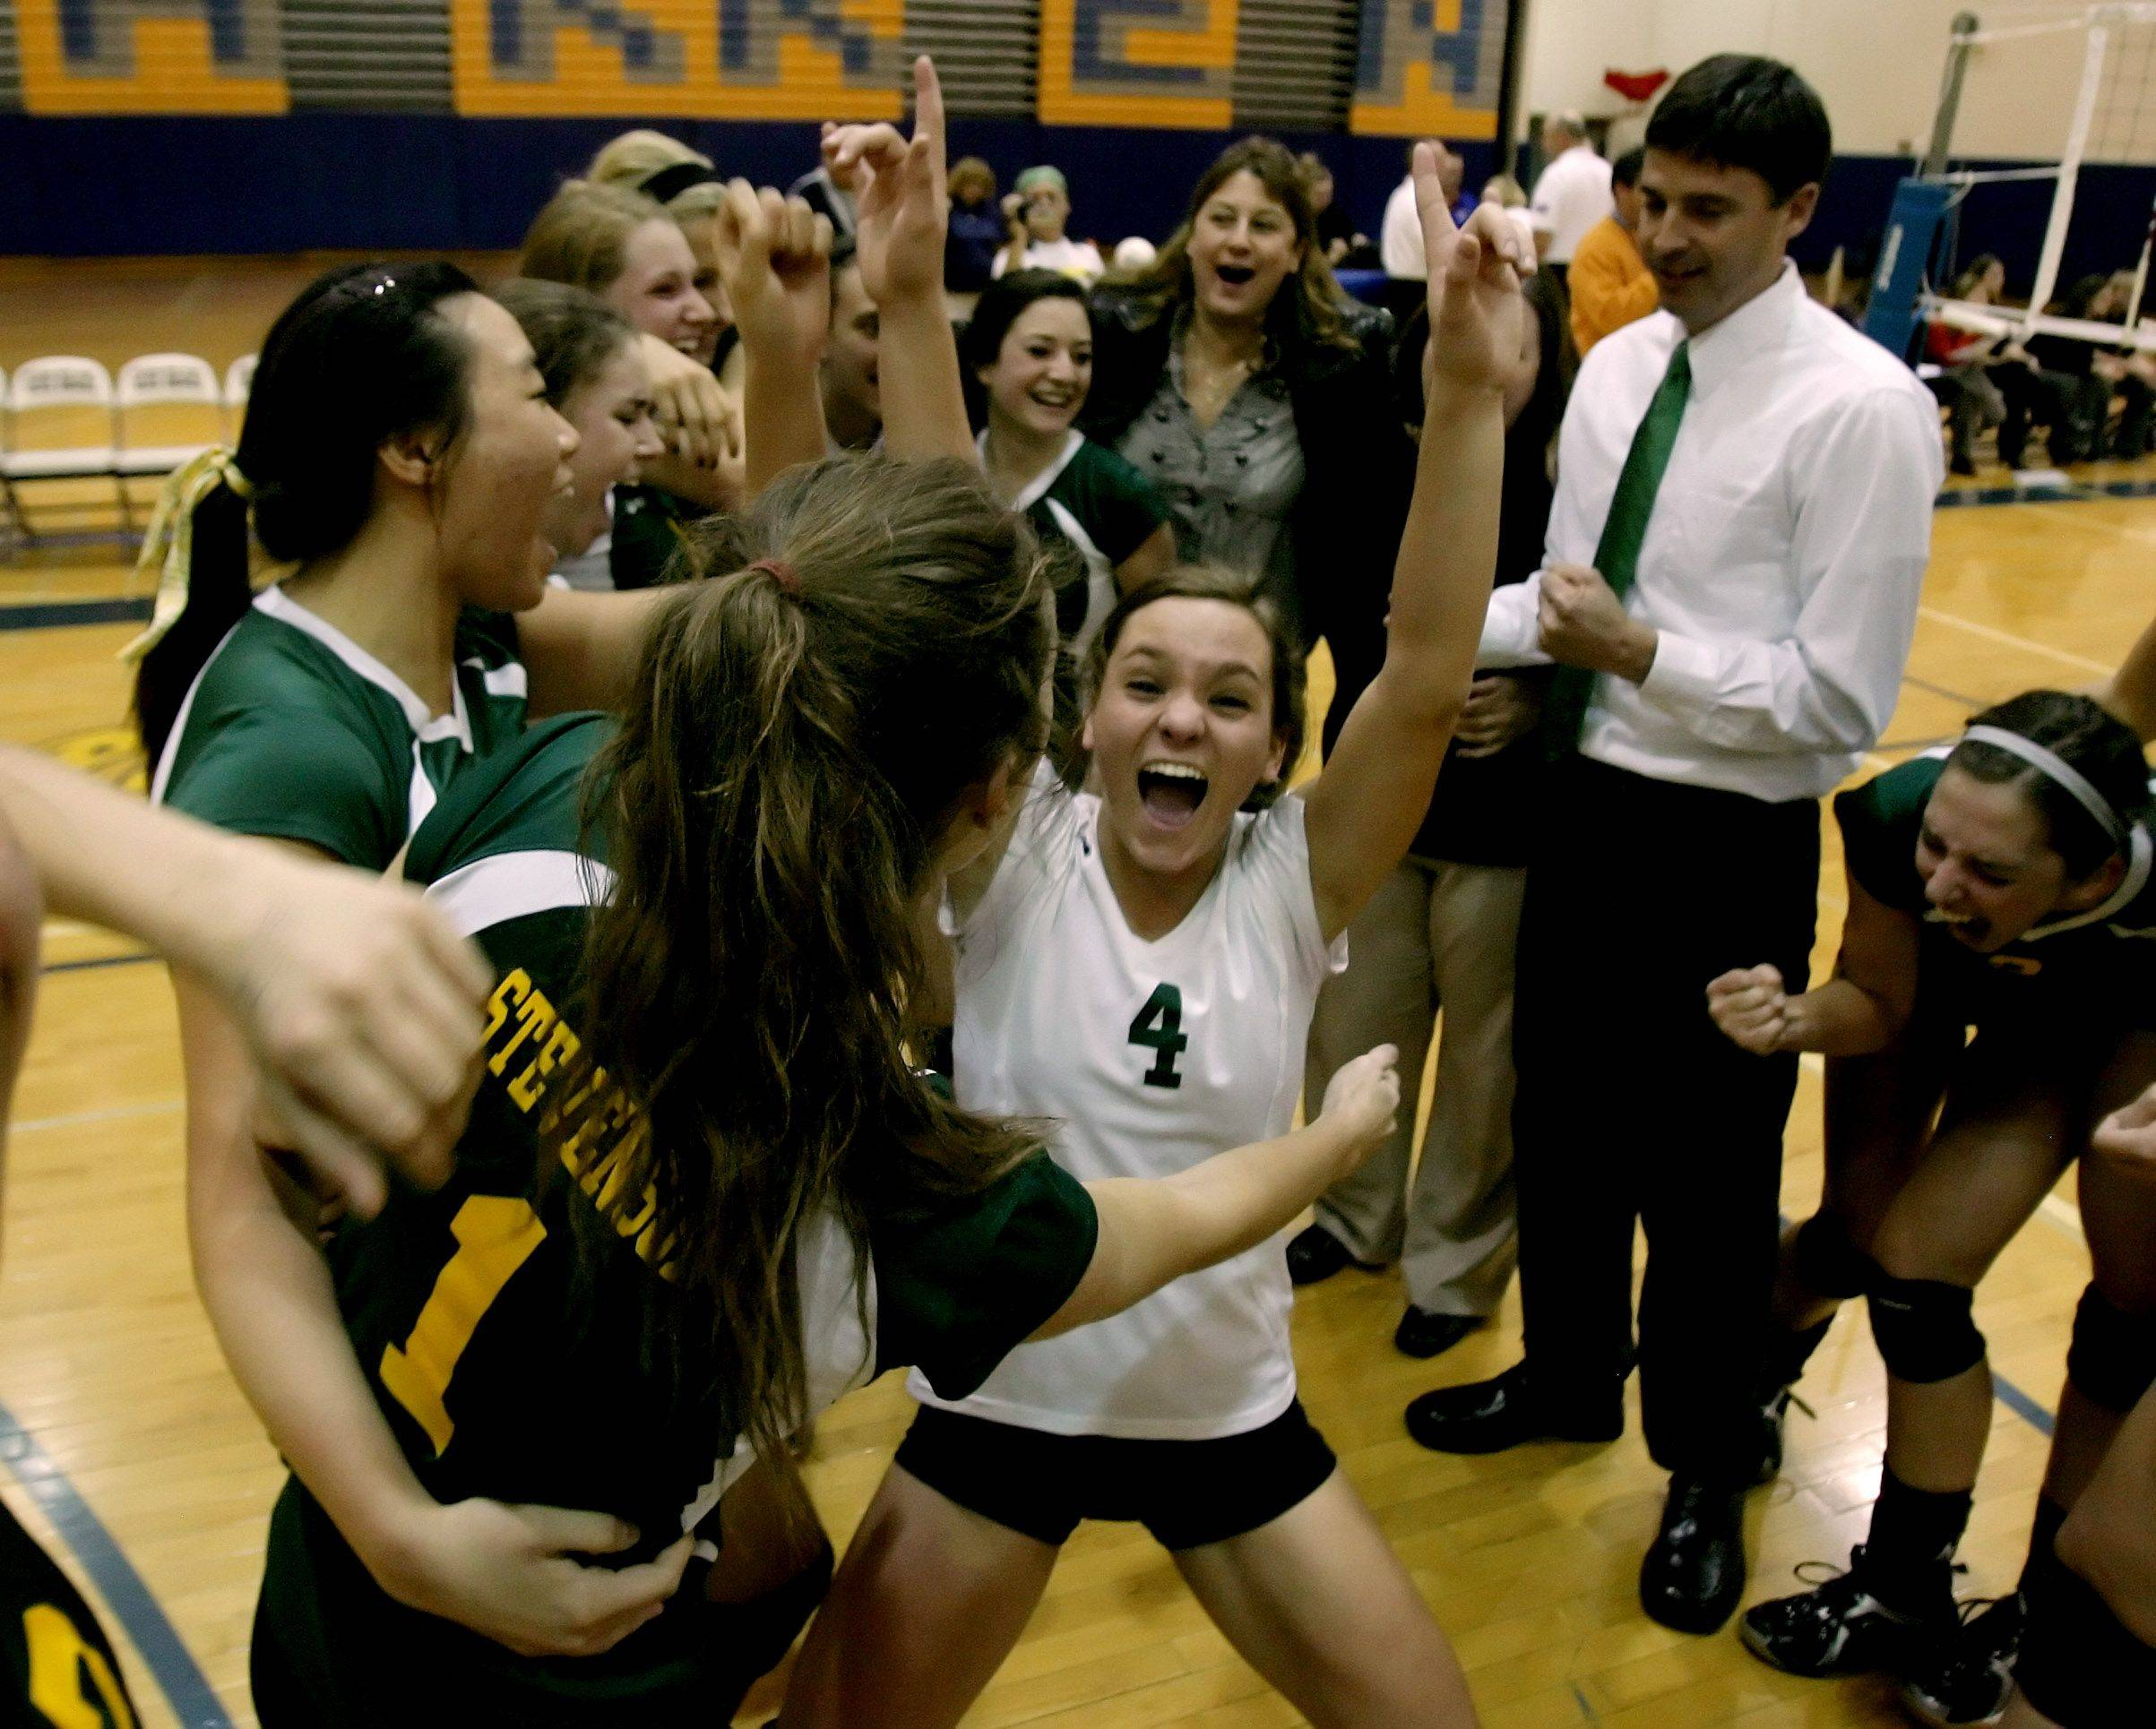 Nicole Duszczyk, center, celebrates with her Stevenson teammates after their victory over Lake Zurich in Thursday's sectional volleyball championship in Gurnee.